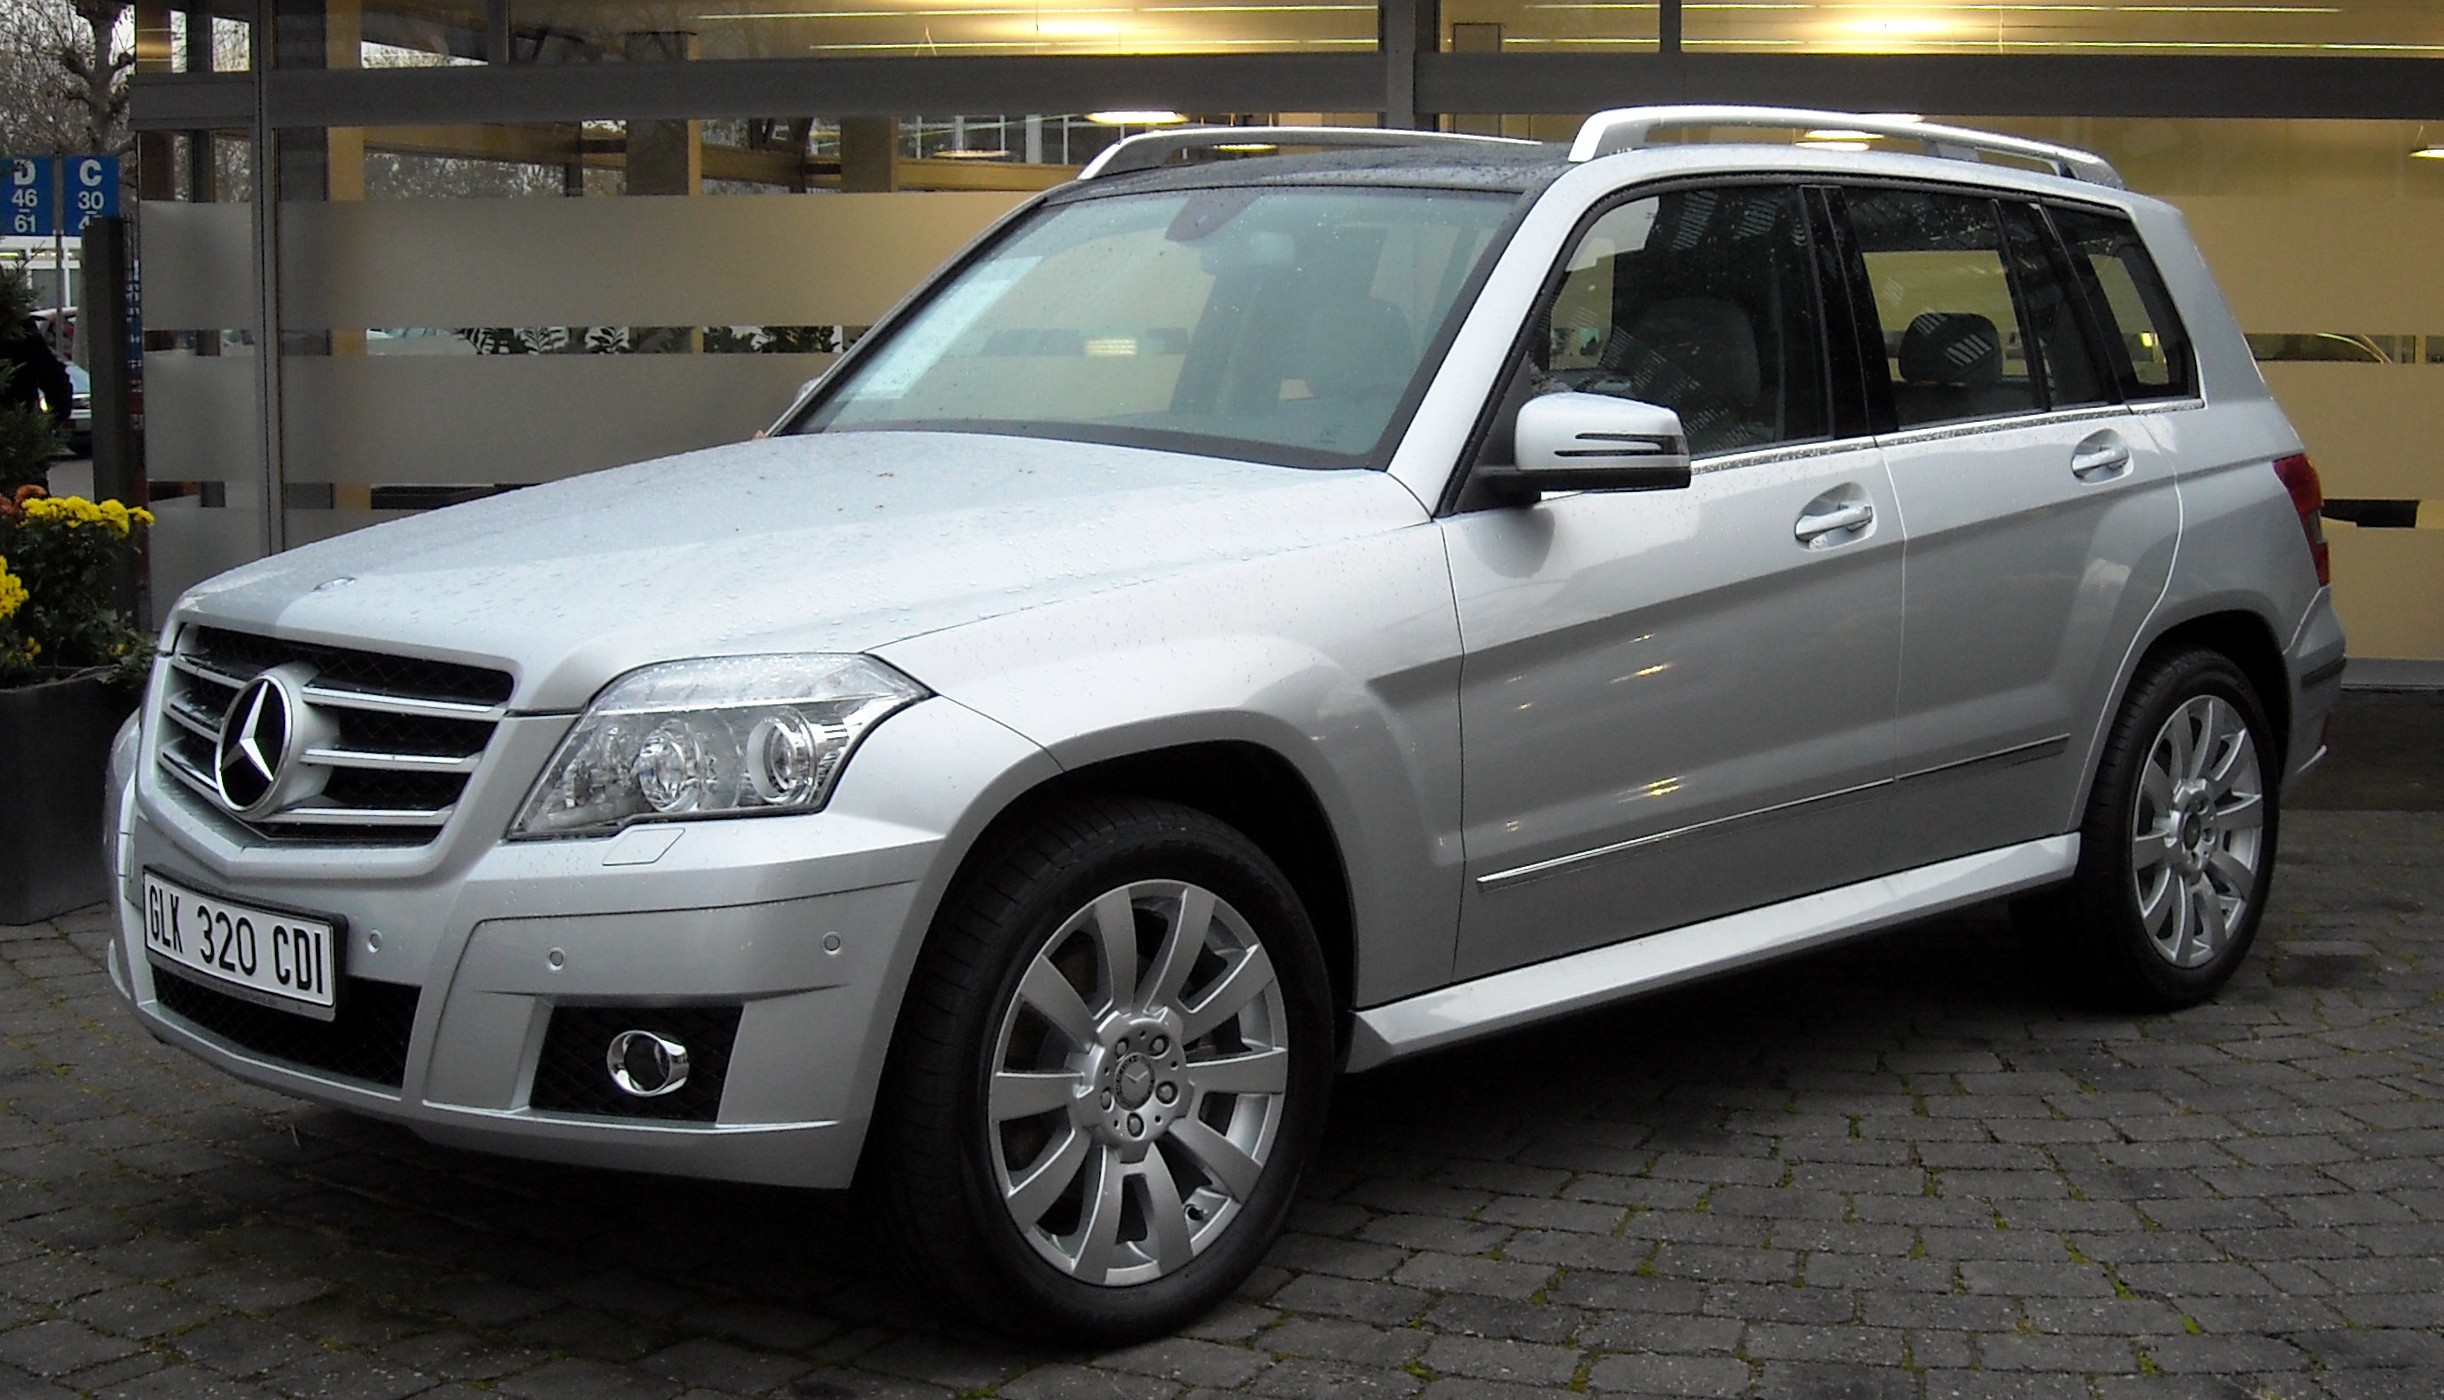 mercedes benz glk luxury crossover suv review. Black Bedroom Furniture Sets. Home Design Ideas